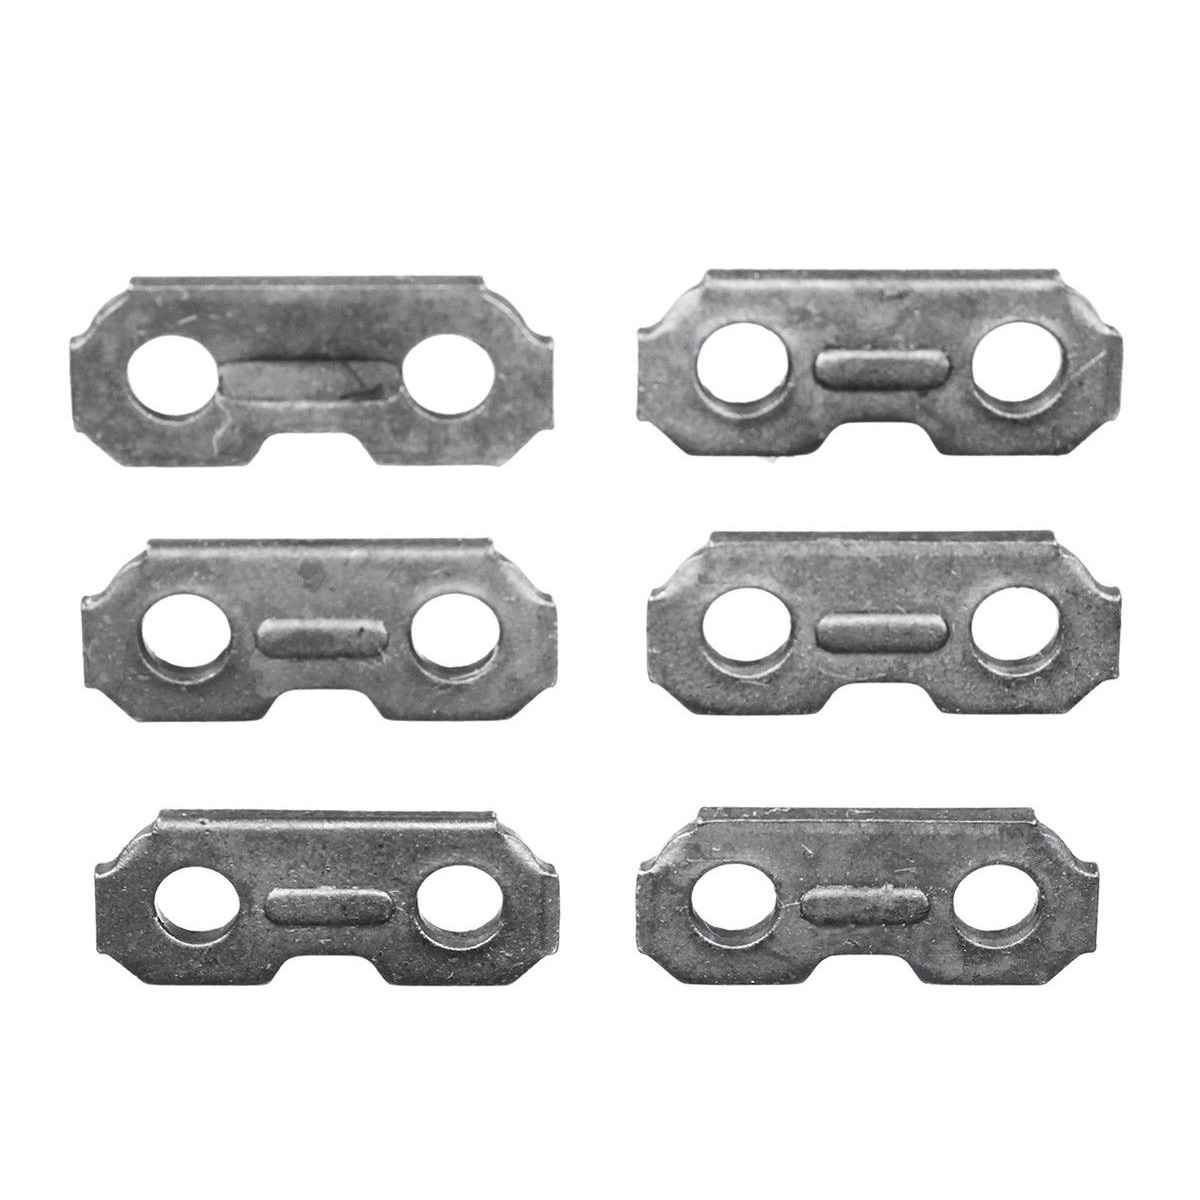 6pcs Saw Chain 3/8 0.063 For Joining Chains 17.5mmx6.9mm Steel Chainsaw Chain Joiner Link Chain Saw Parts